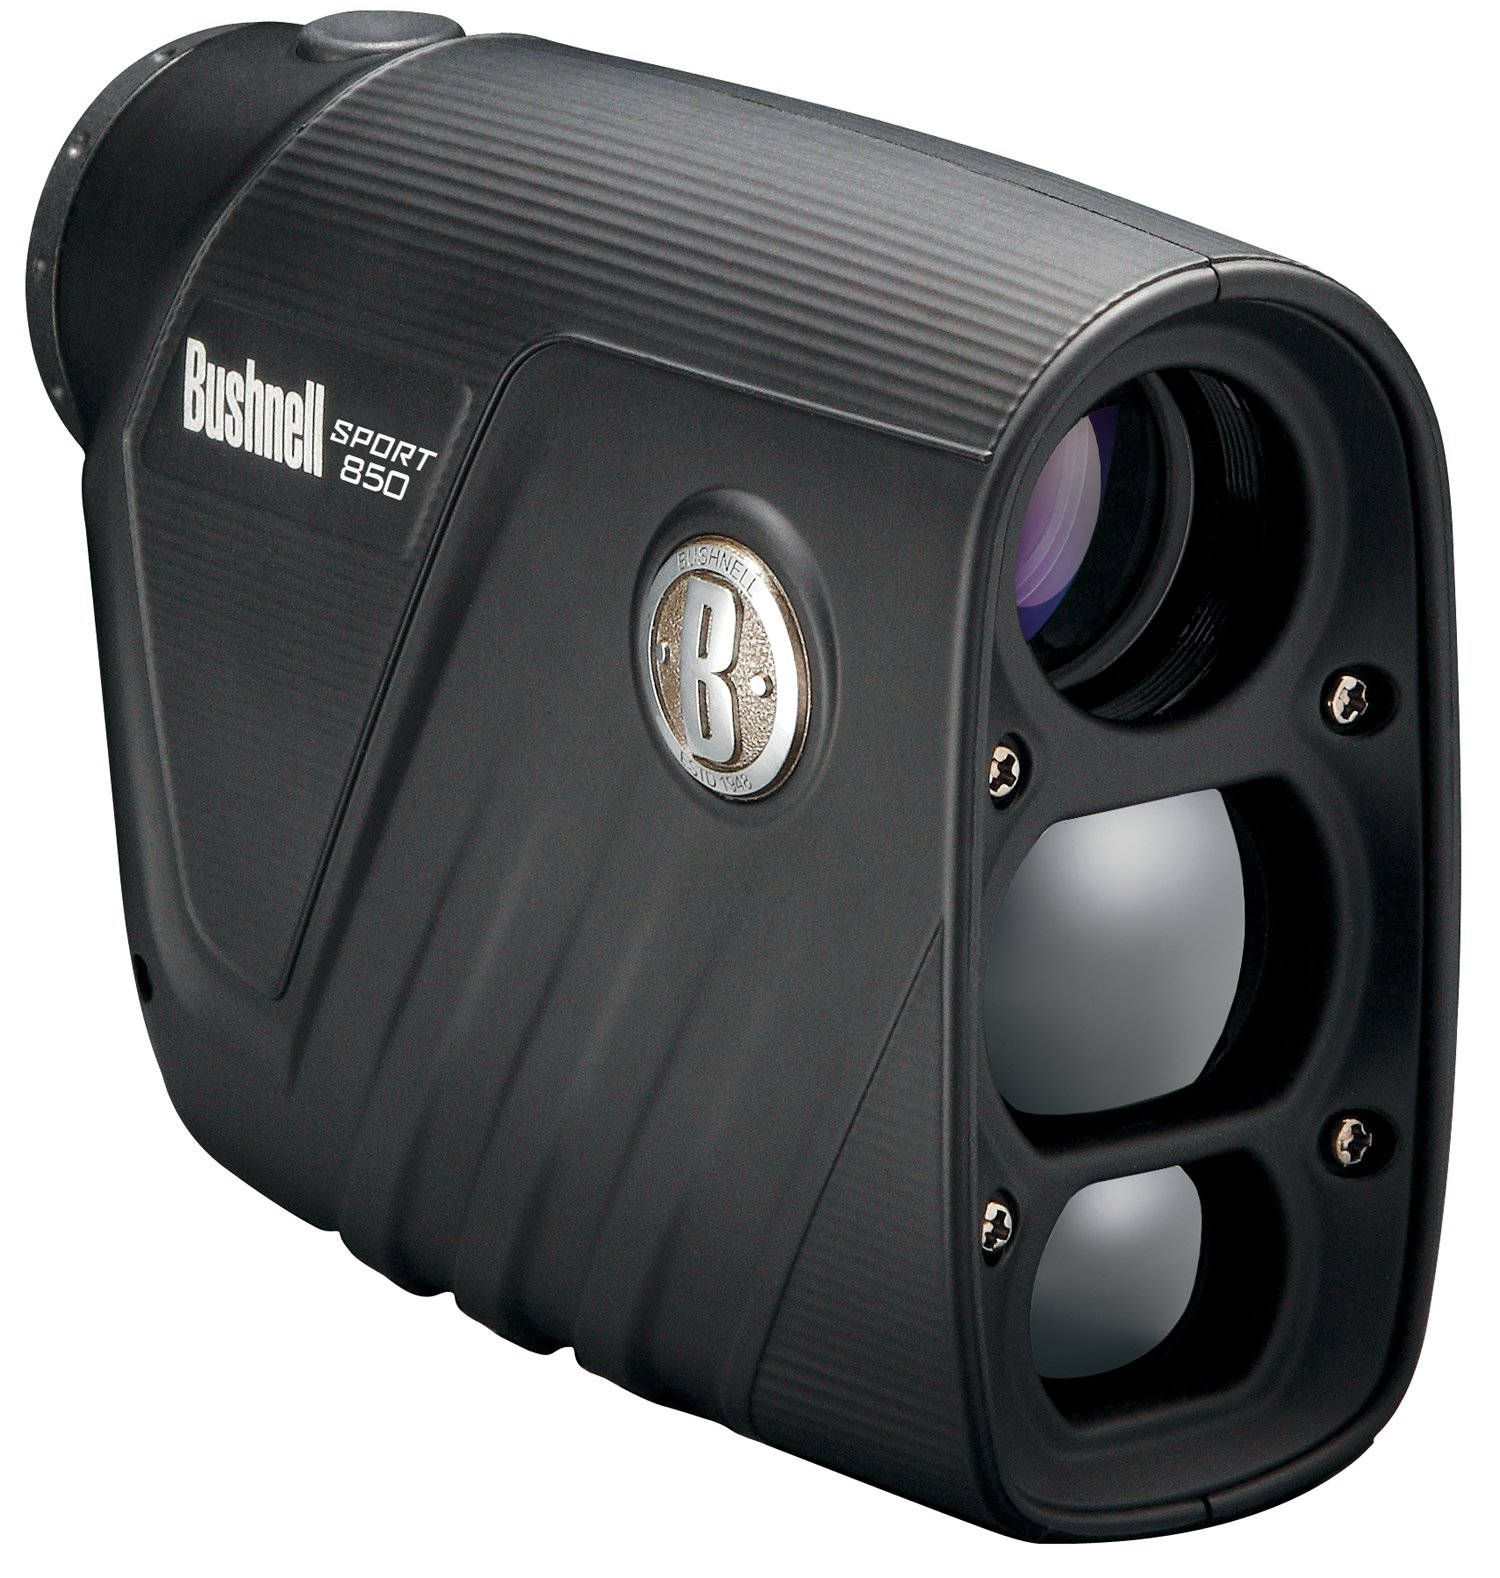 Bushnell Sport 850 4x 20mm 1-Button Operation Compact Laser Rangefinder